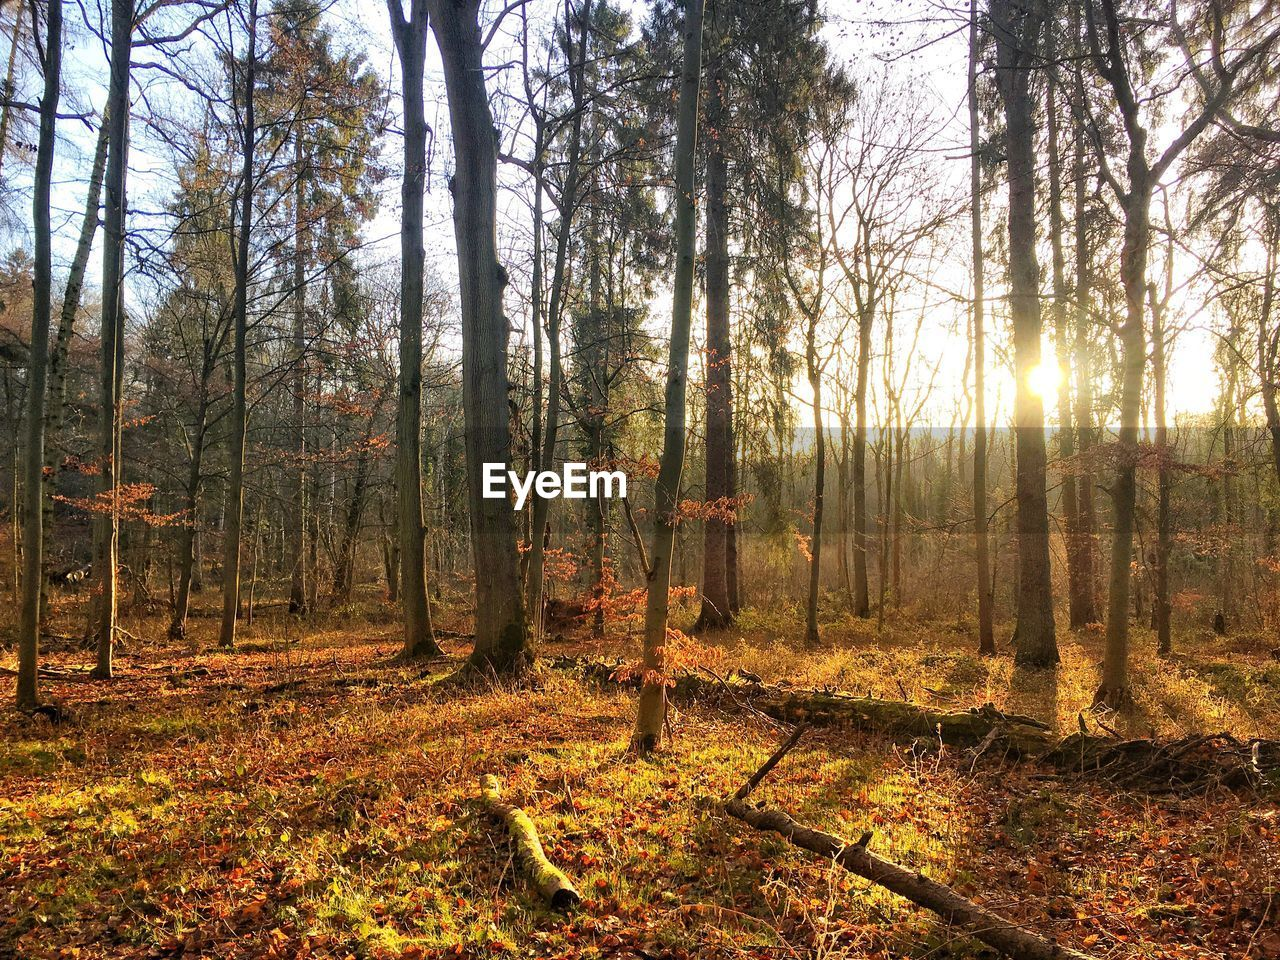 forest, tree, tranquil scene, nature, tranquility, tree trunk, woodland, scenics, beauty in nature, no people, landscape, change, day, outdoors, growth, autumn, sky